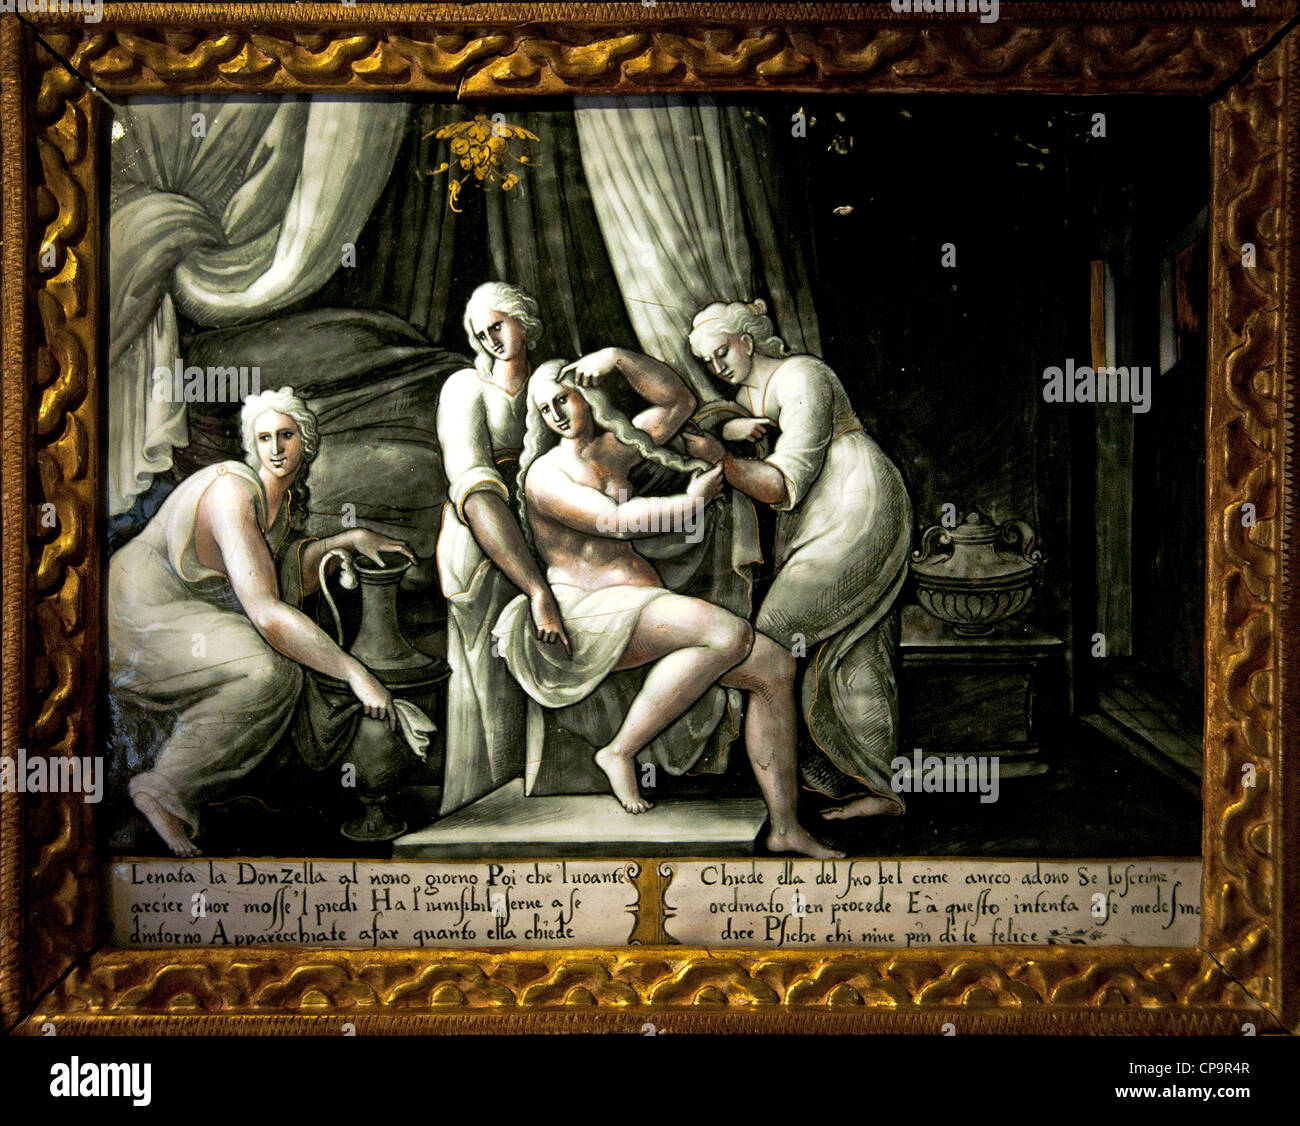 The Toilet of Psyche Leonard Limousin  Limosin 1505 - 1577  Painter enamel - Stock Image